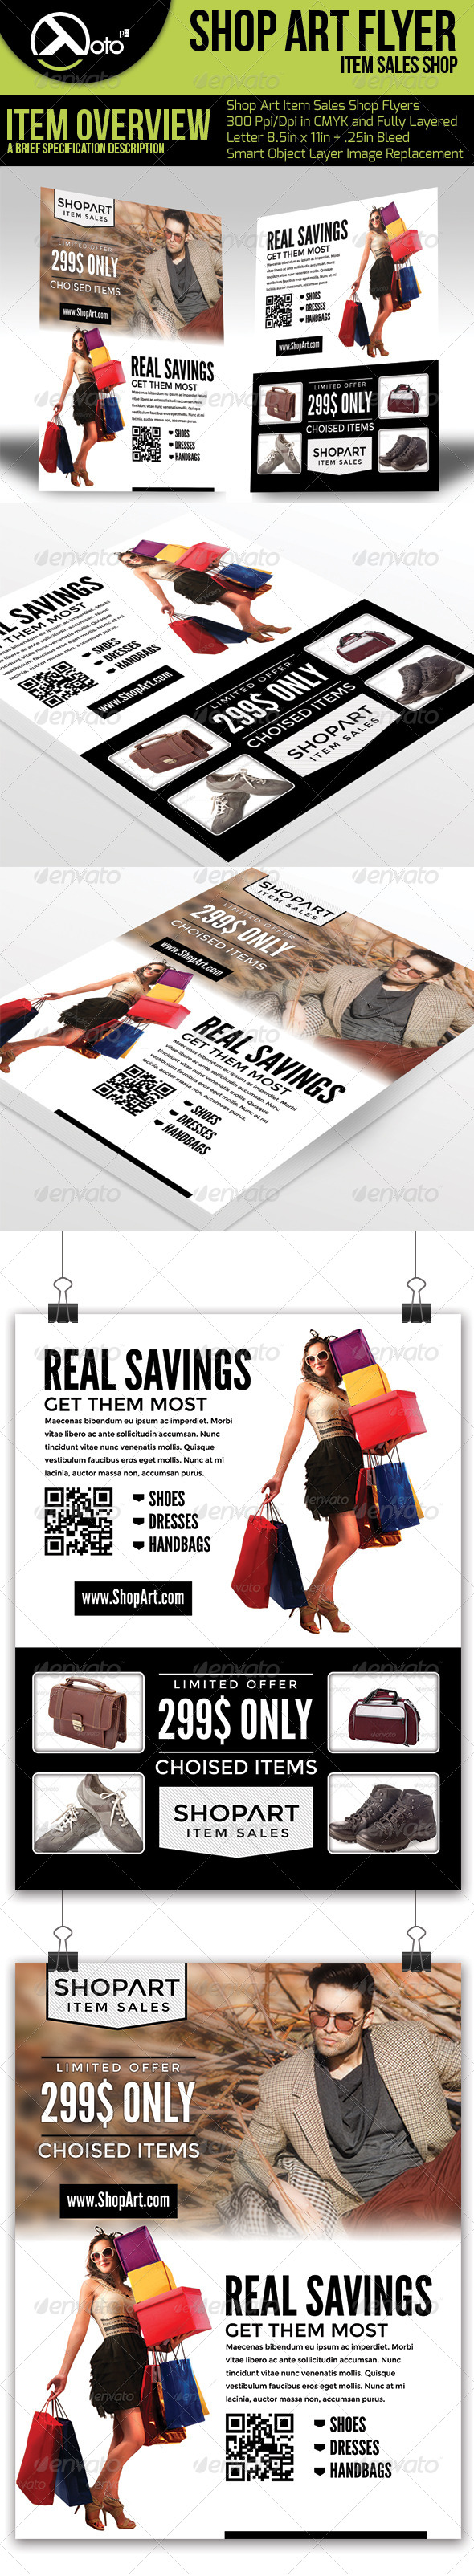 GraphicRiver ShopArt Online Shopping Flyers 6549461